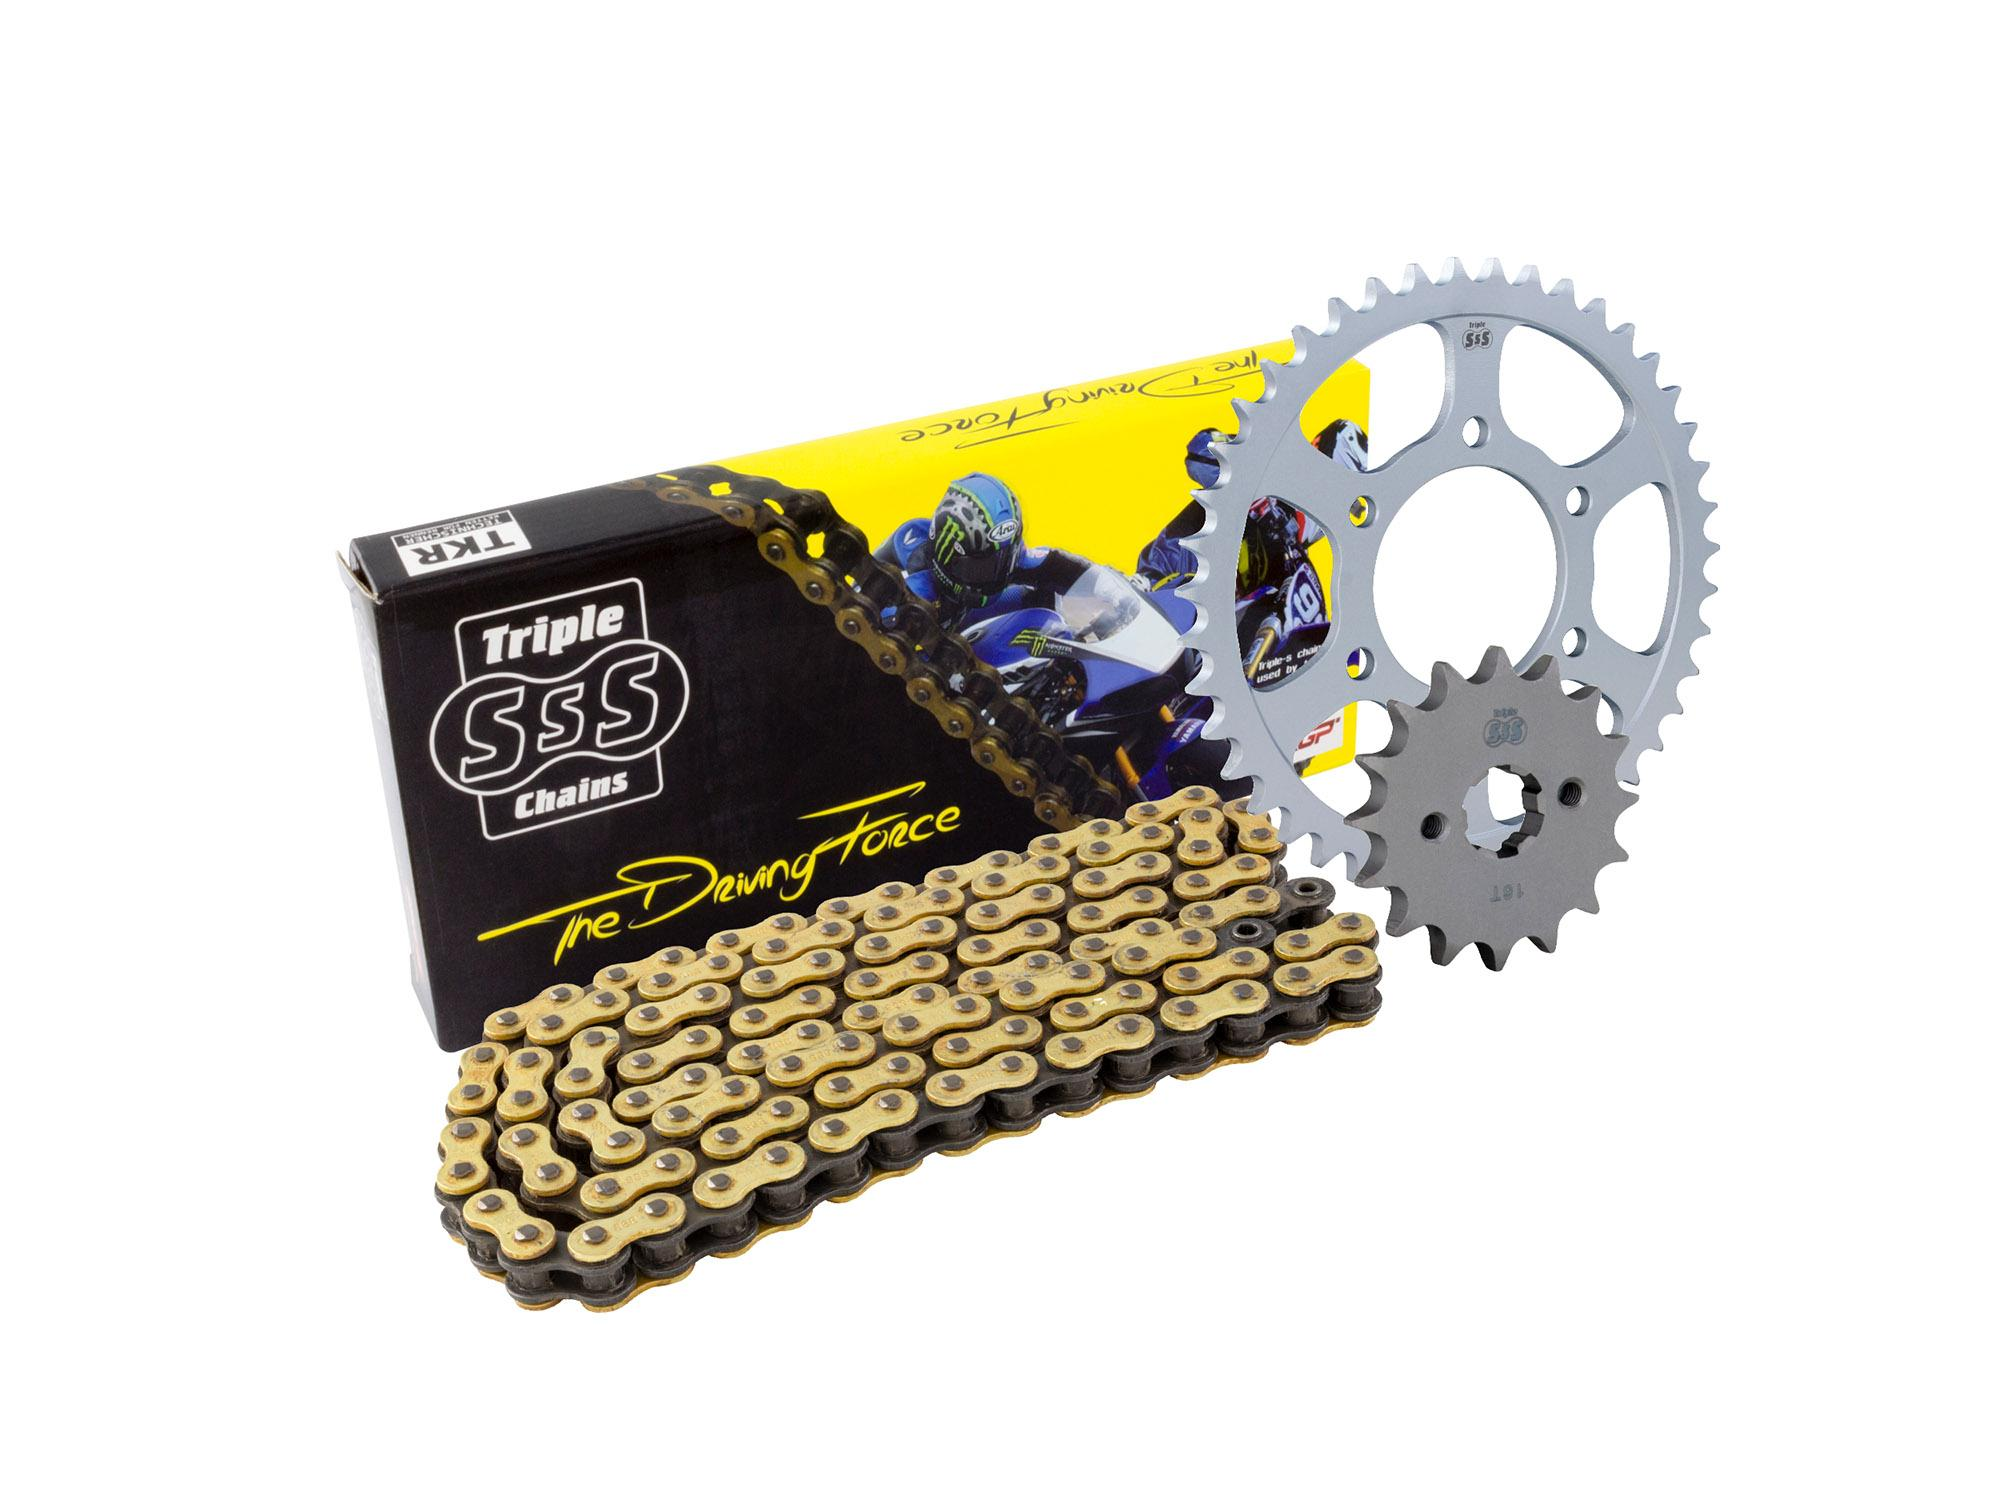 Honda VT750S 11-13 Chain & Sprocket Kit: 17T Front, 38T Rear, HD O-Ring Gold Chain 525H 112Link